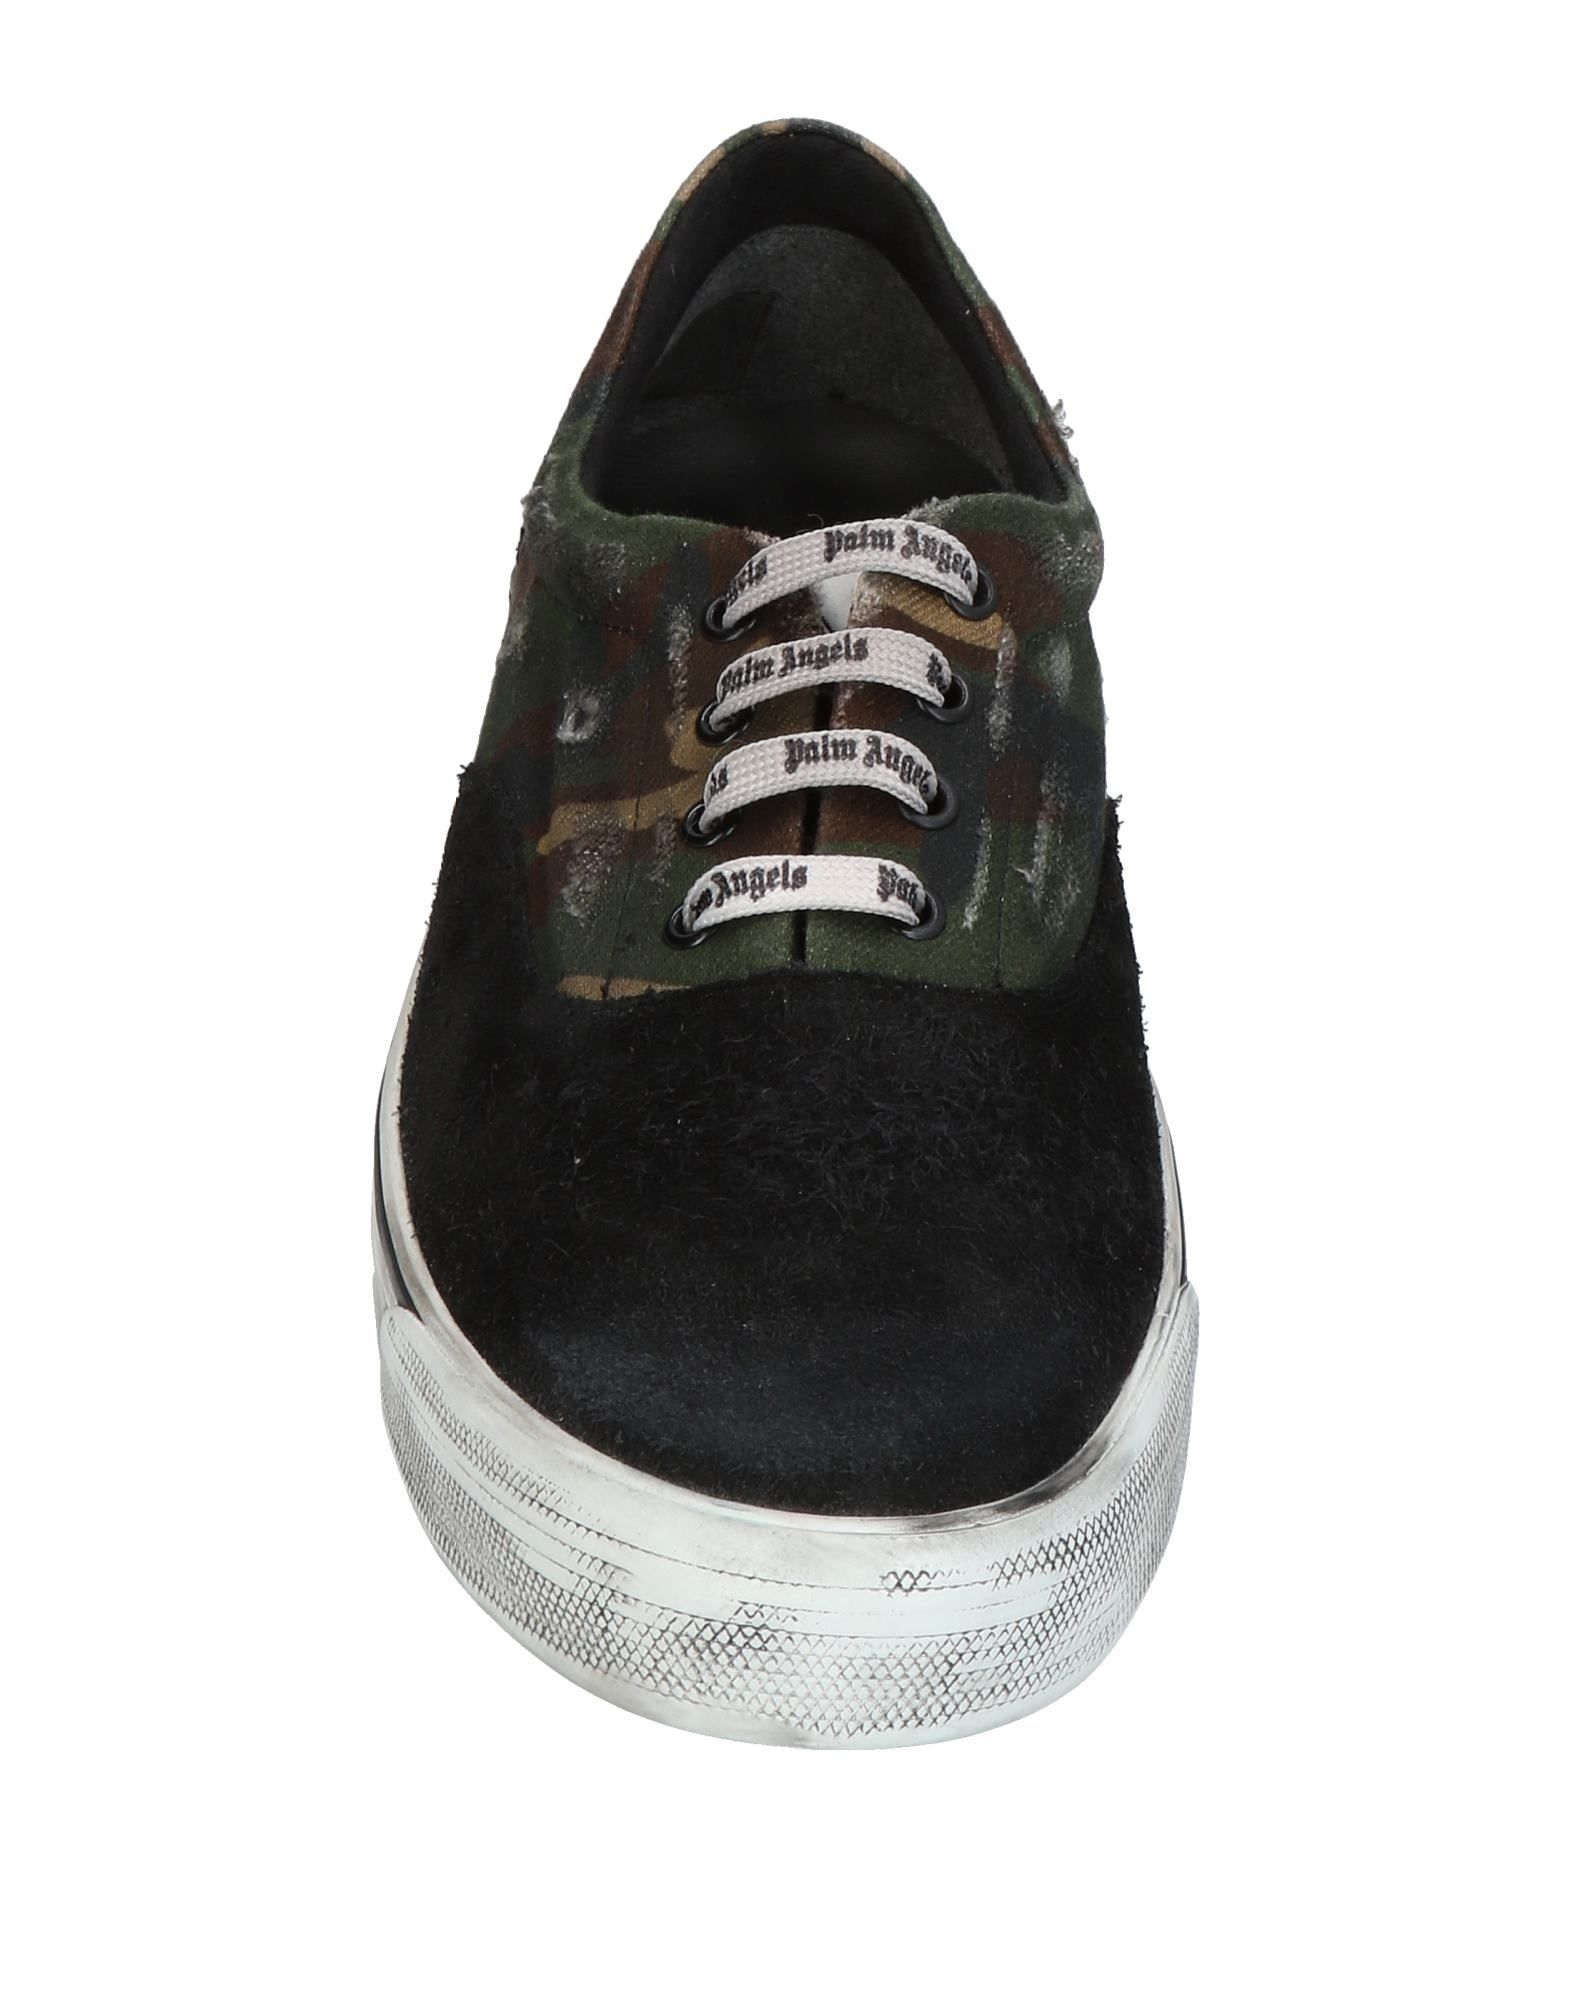 Sneakers Palm Angels Femme - Sneakers Palm Angels sur